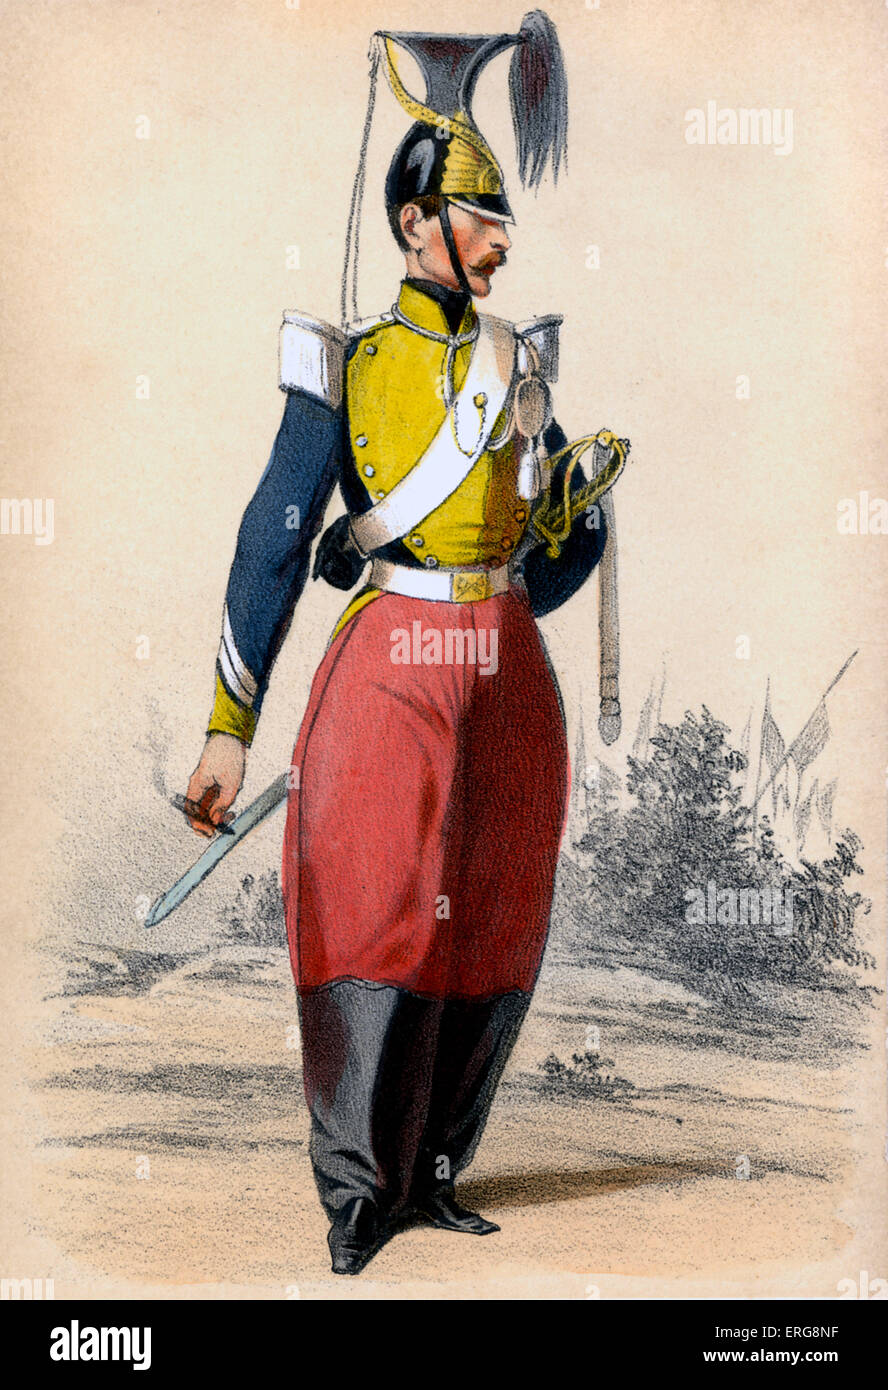 Lancier: type of cavalryman in the 19th century French Army who fought with a lance. From series 'Paris au XIX. - Stock Image